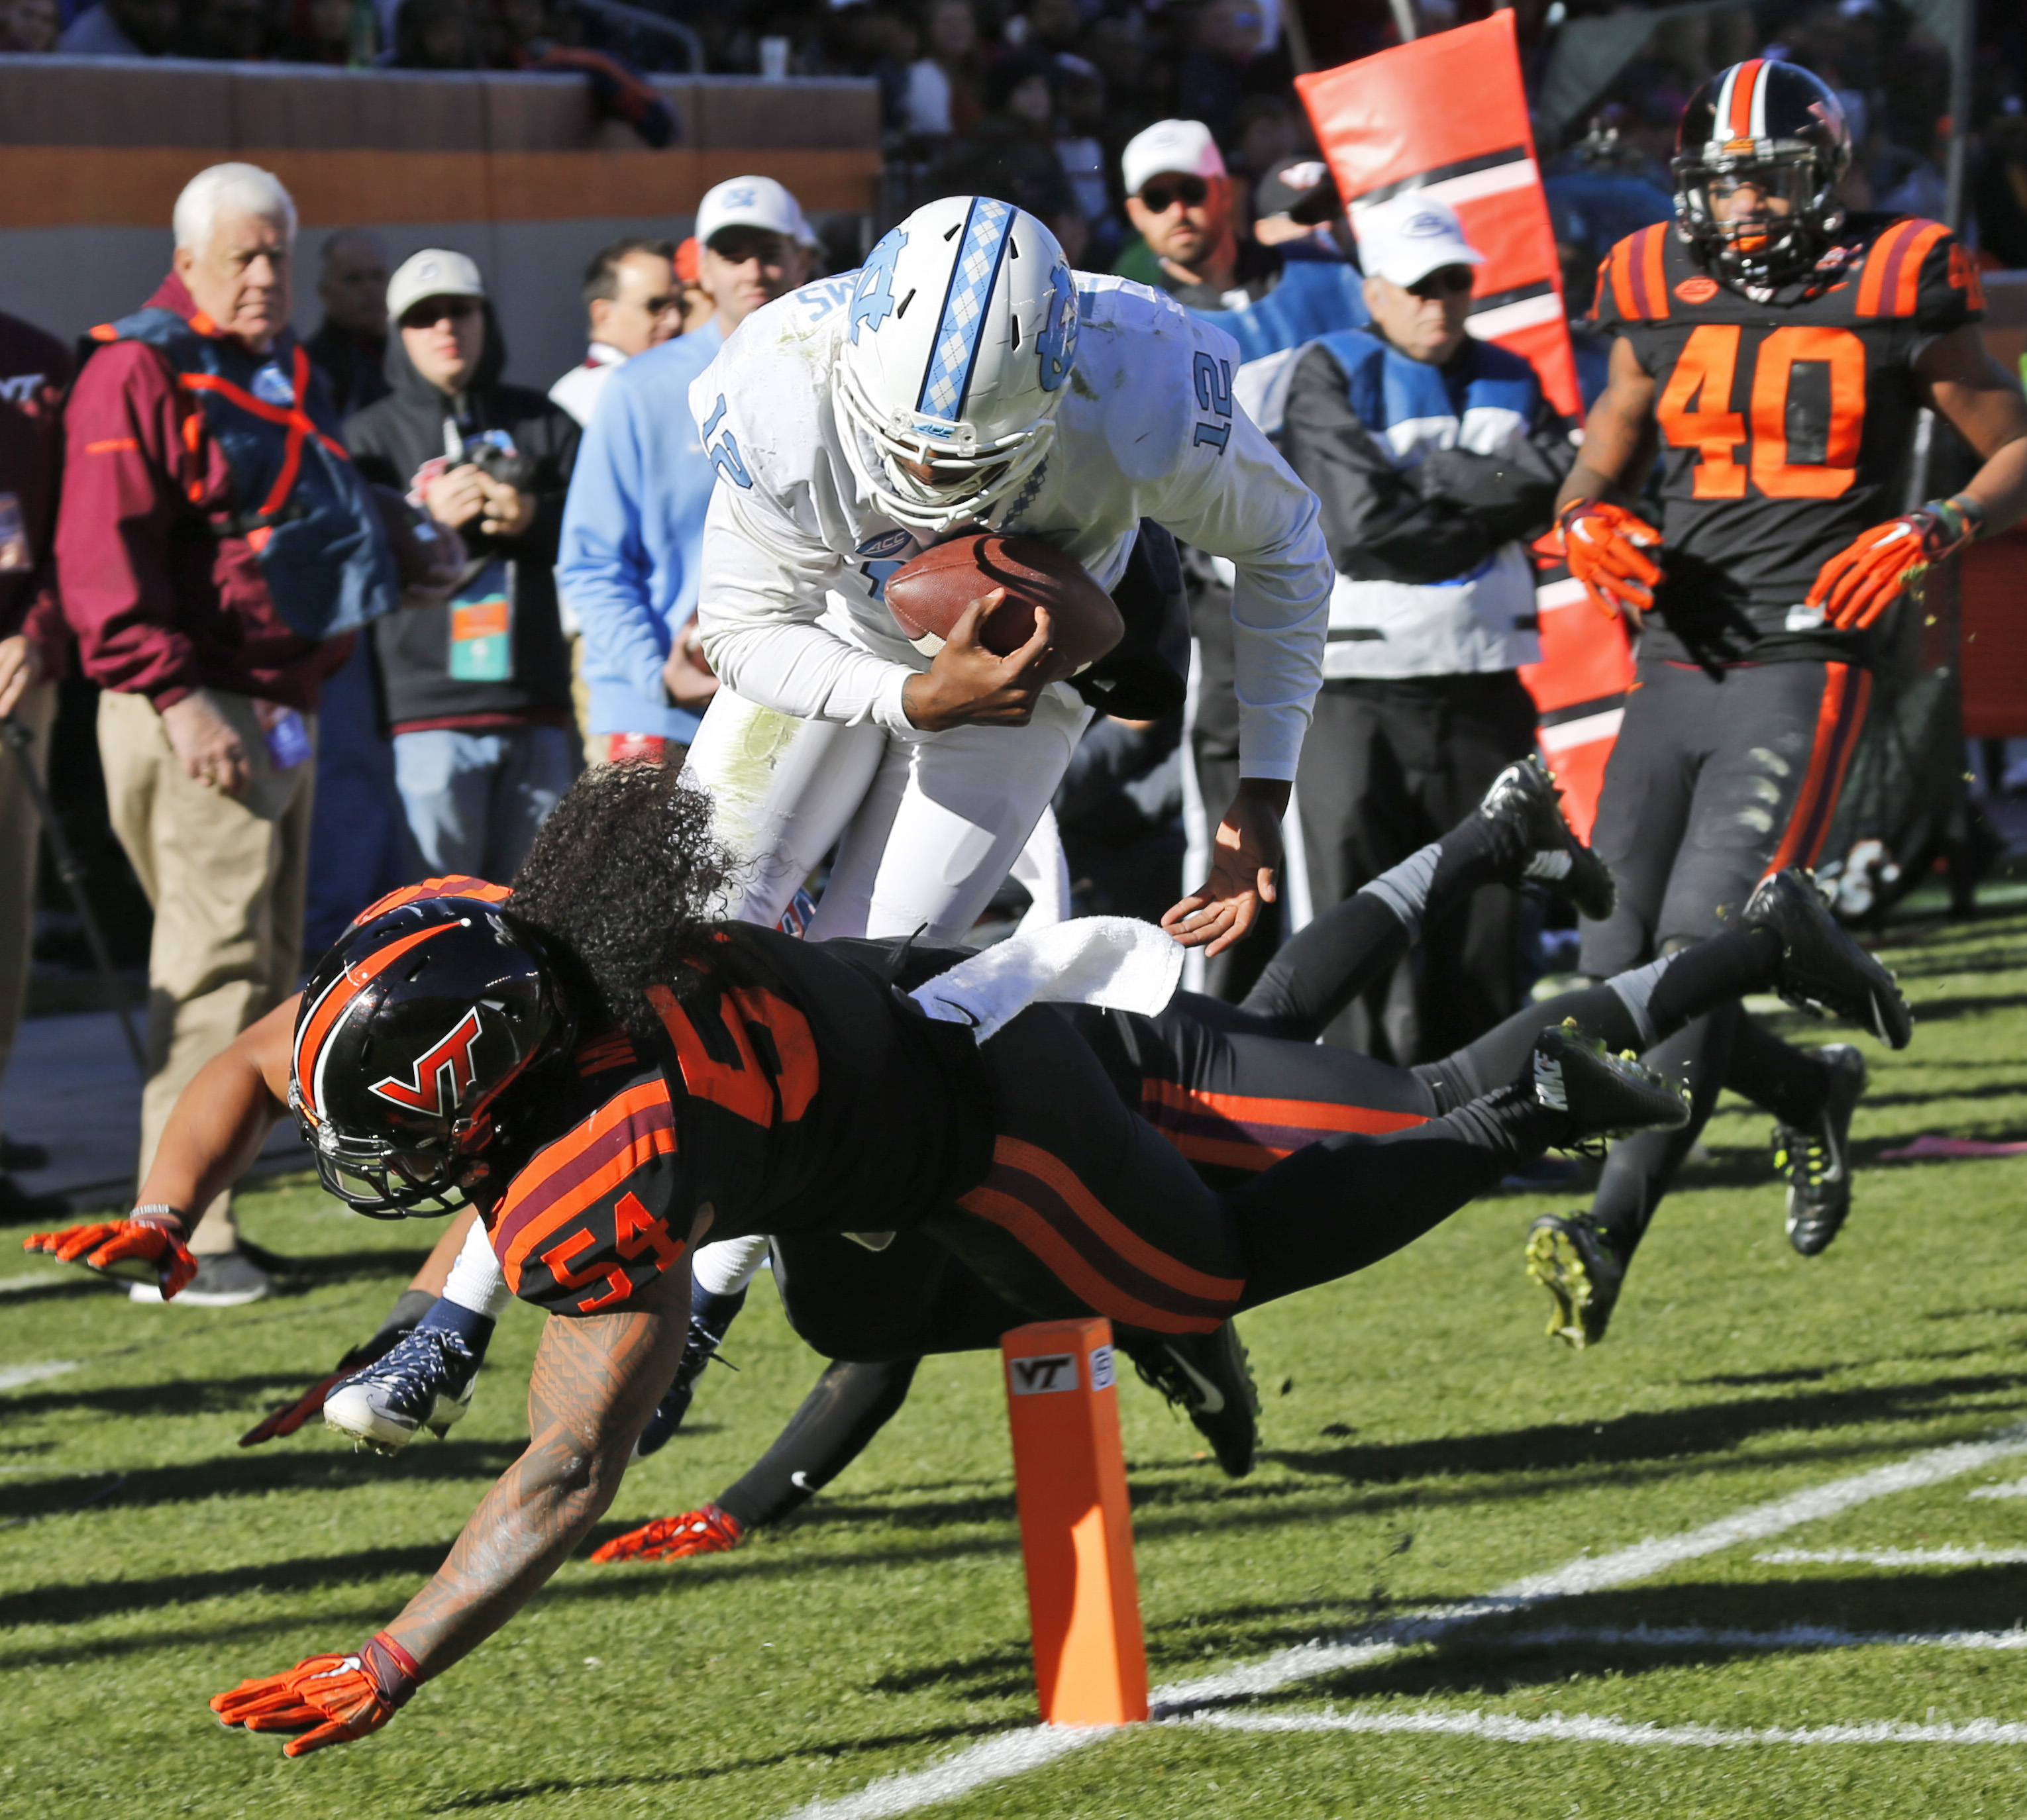 North Carolina quarterback Marquise Williams (12) dives toward the end zone as Virginia Tech linebacker Andrew Motuapuaka (54) defends during the second half of an NCAA college football game in Blacksburg, Va., Saturday, Nov. 21, 2015.  Williams was short